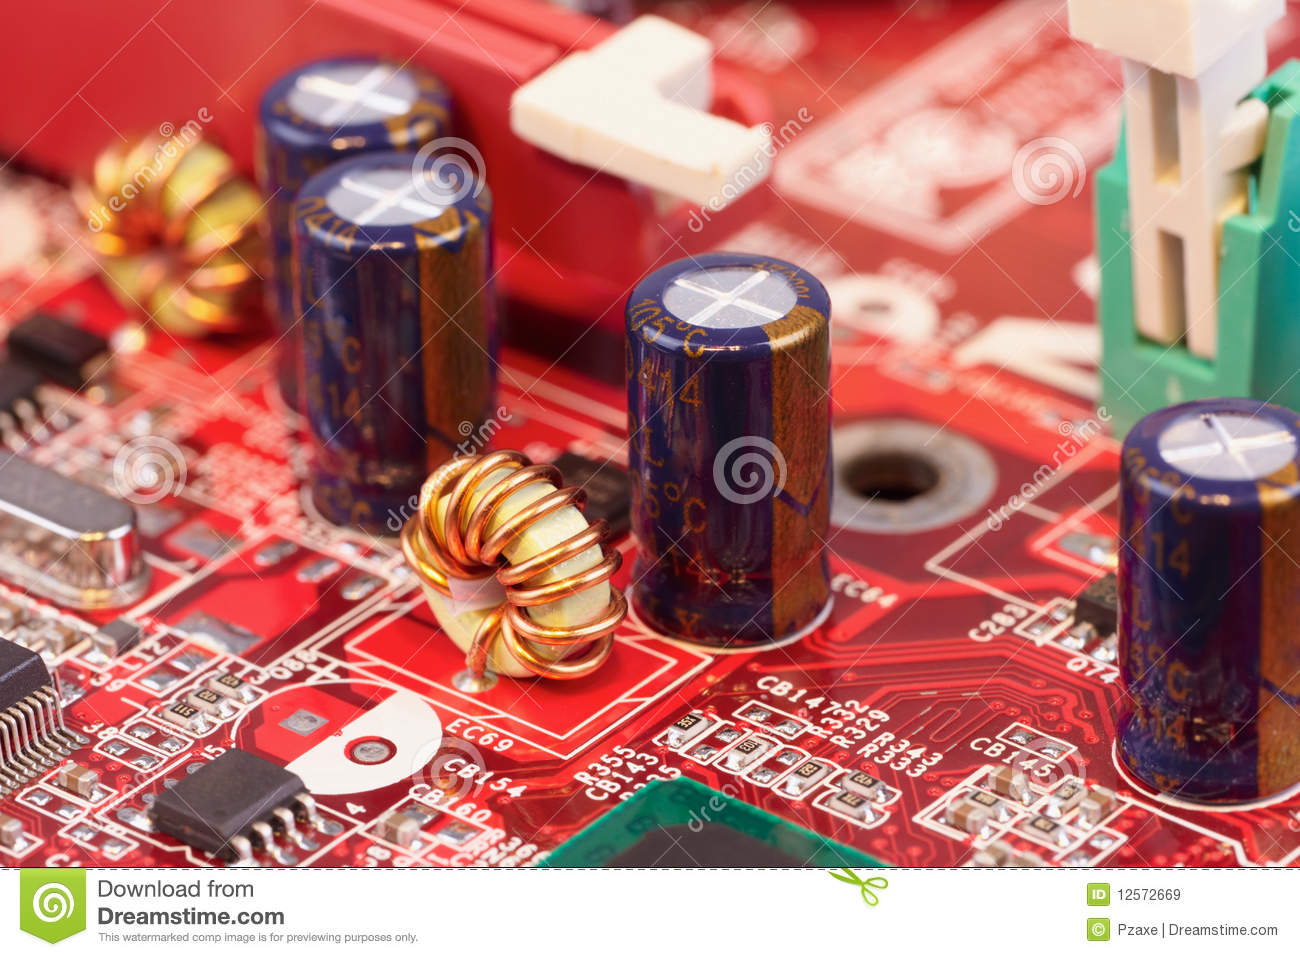 close up of electronic circuits in technology on mainboard Identify Electronic Components Circuit Board Electronic Circuit Laser Tripwire